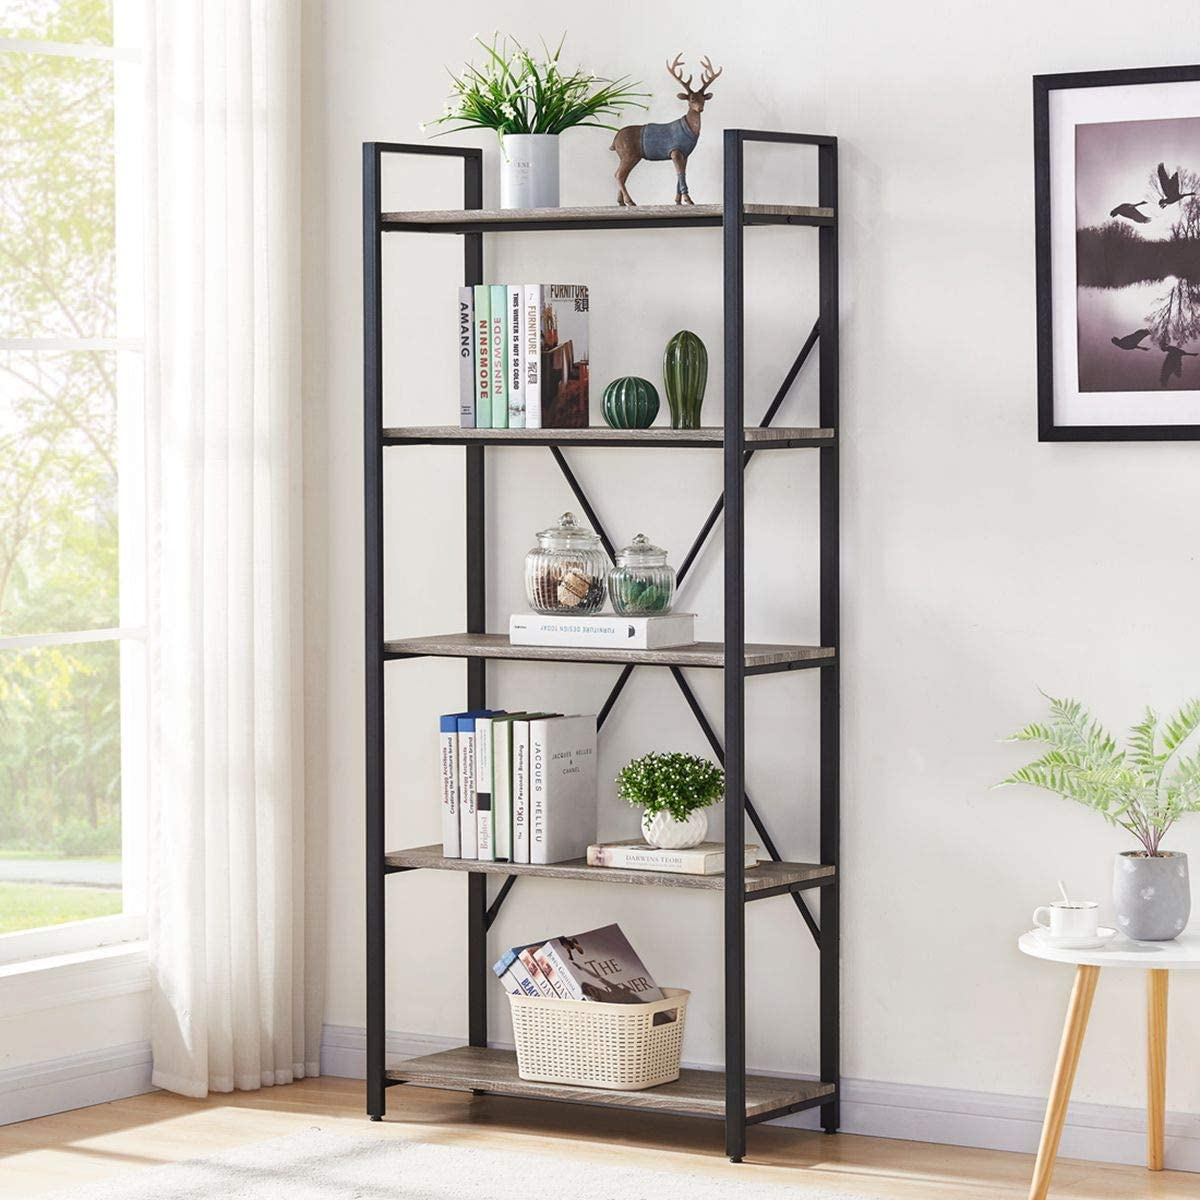 BON AUGURE Industrial Bookshelf